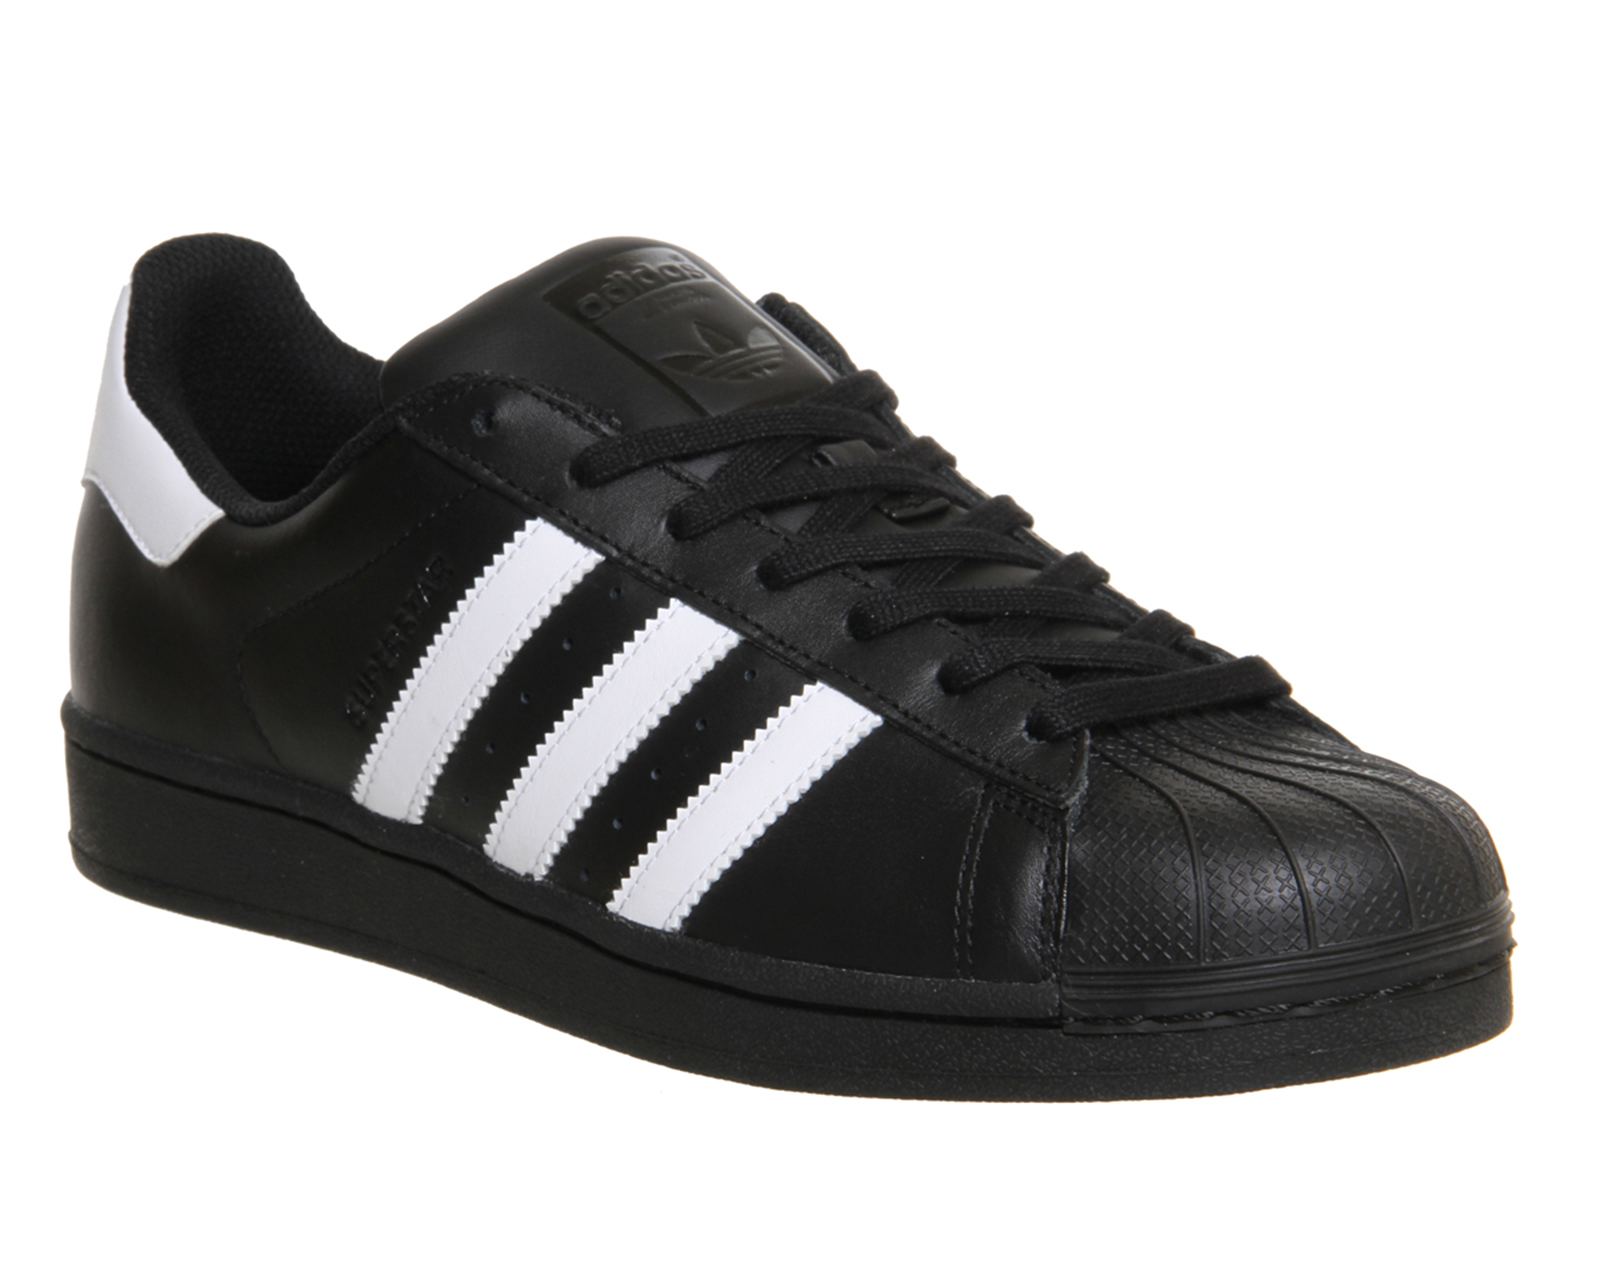 Adidas Superstar All White And Black